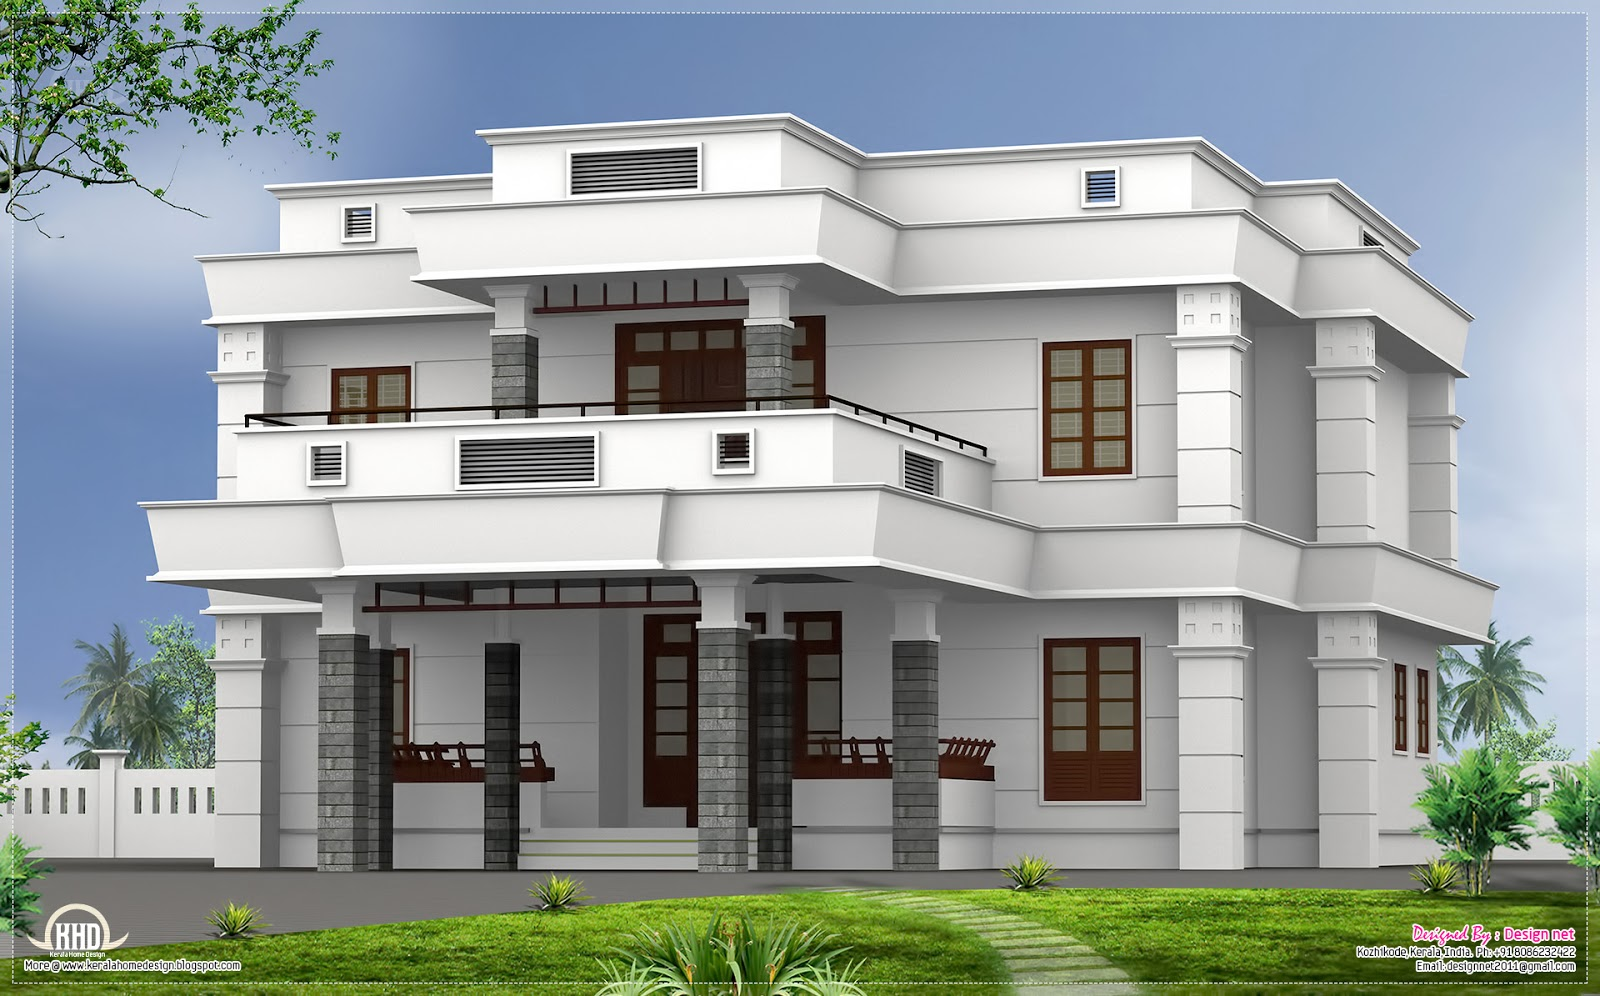 5 bhk modern flat roof house design kerala home design House plan flat roof design